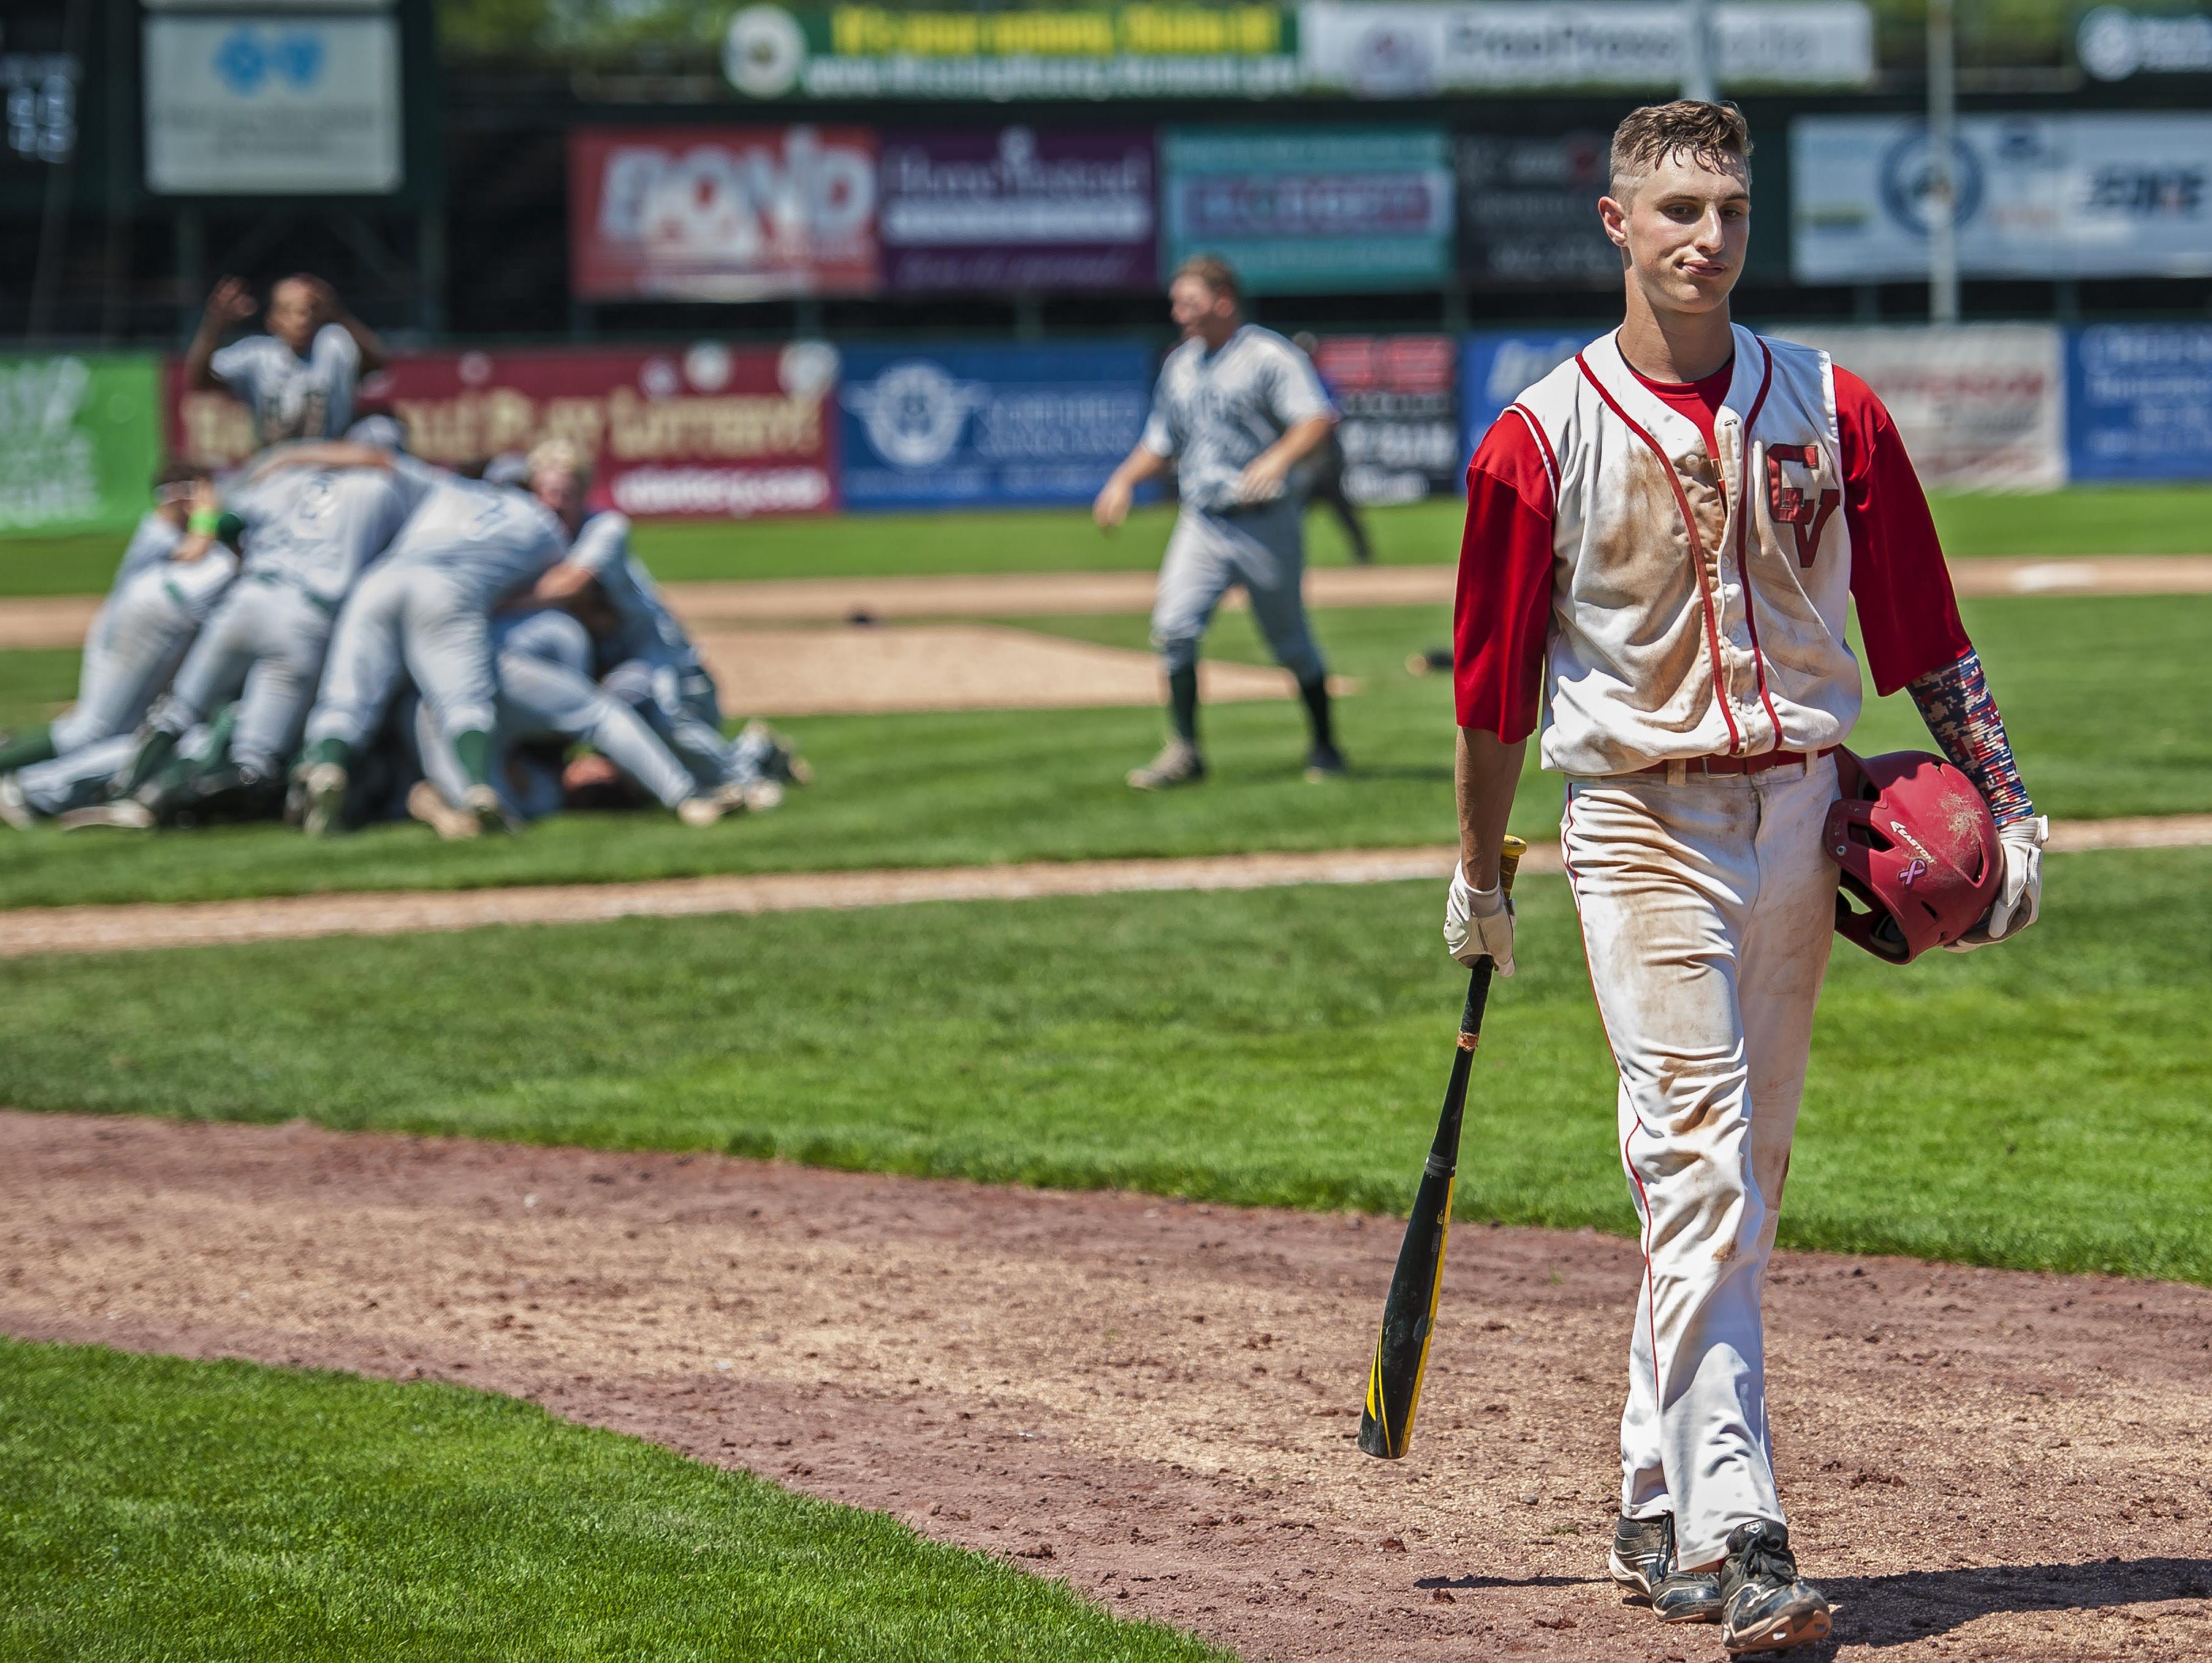 CVU's Rayne Supple, right, walks away after striking out in extra innings to end the Division I state high school baseball championship against Rice at Centennial Field in Burlington on Saturday, June 13, 2015.